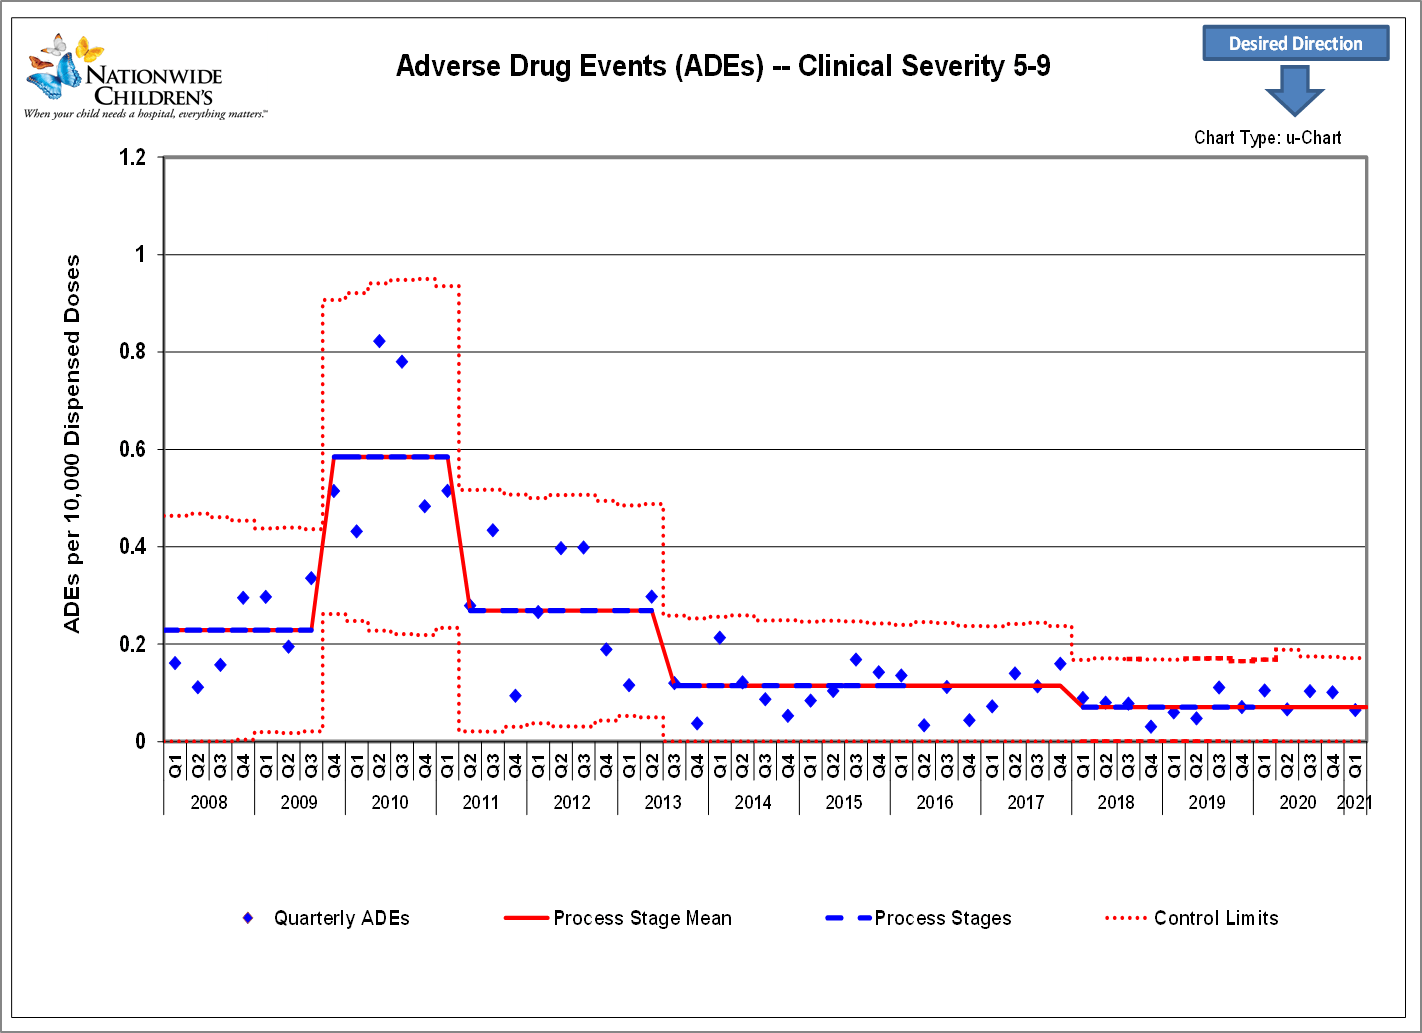 chart depicting the decline of Adverse Drug Events from 2010 to 2018